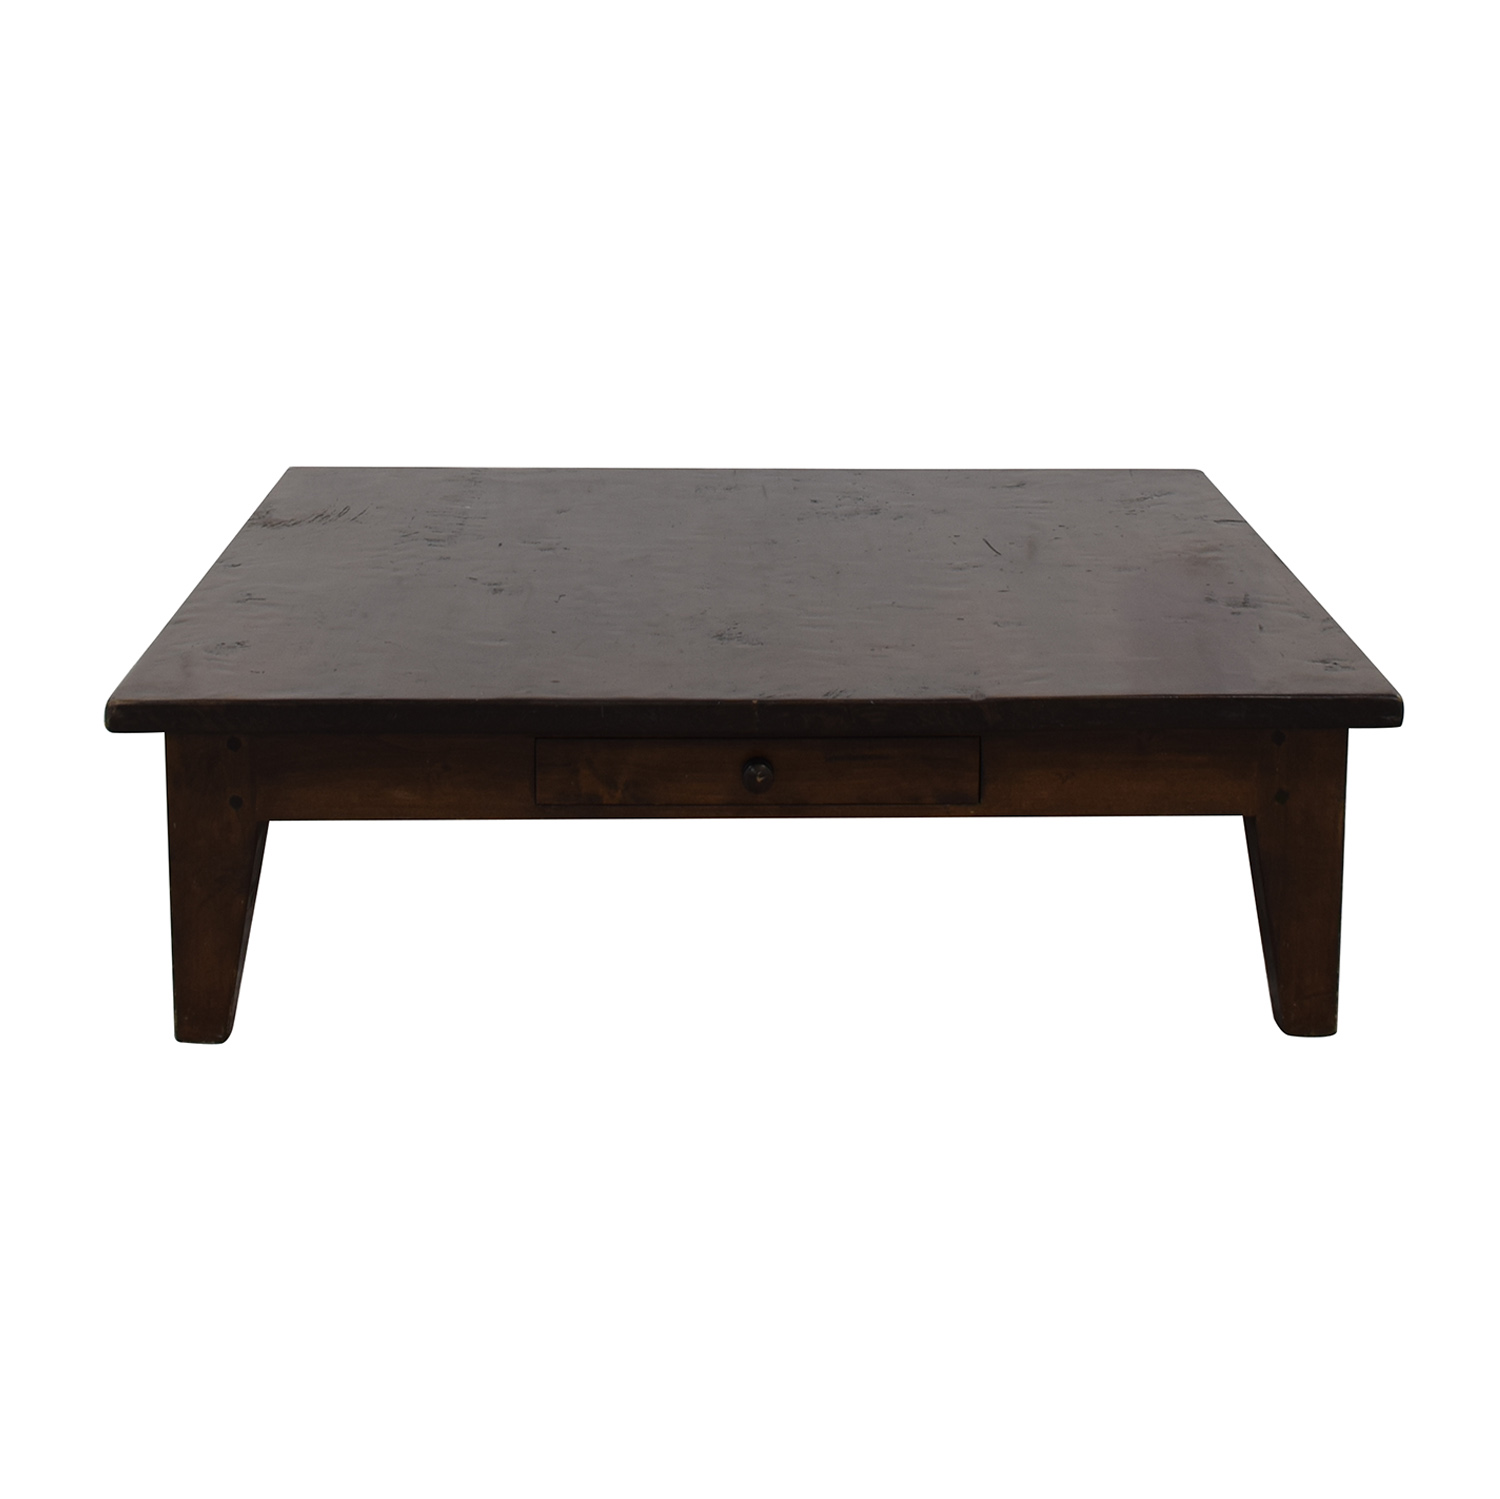 Vintage Single Drawer Low Profile Coffee Table coupon